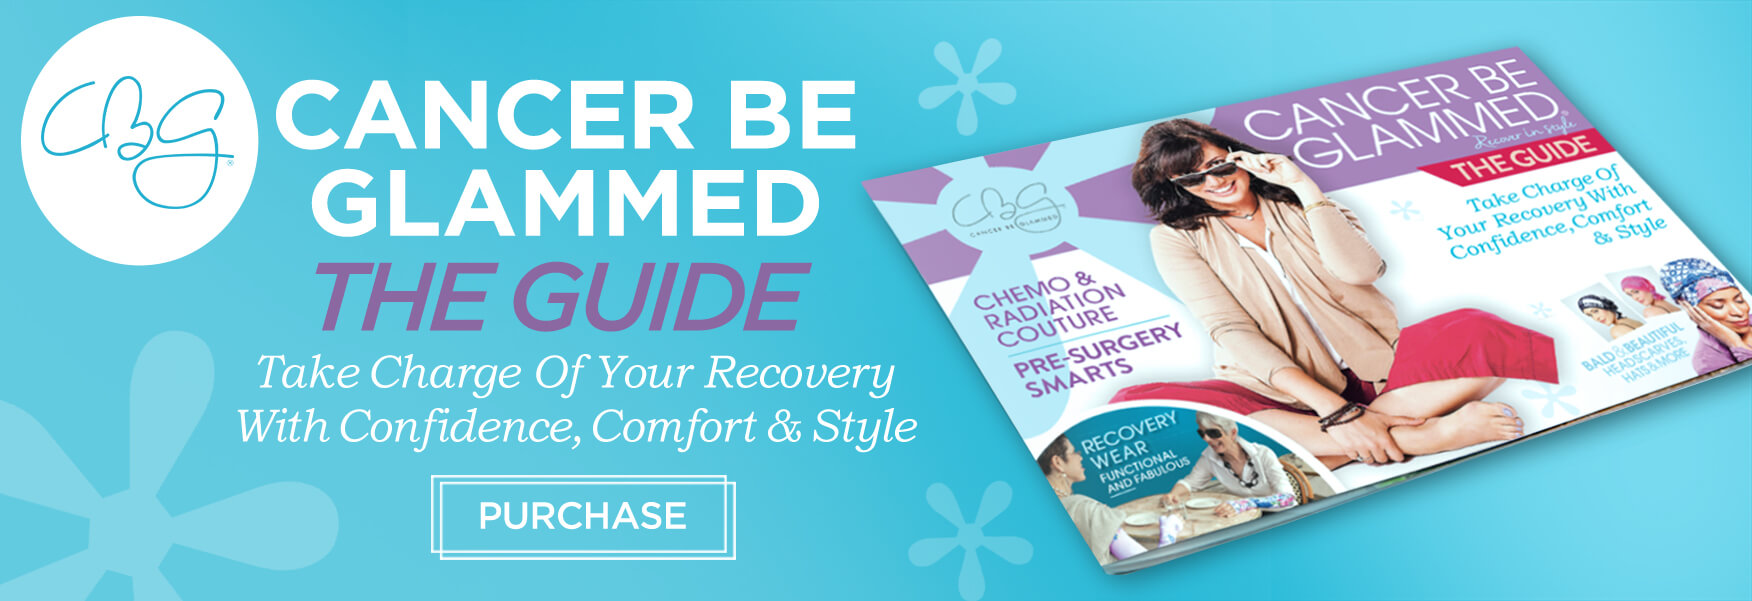 Purchase Cancer Be Glammed: The Guide